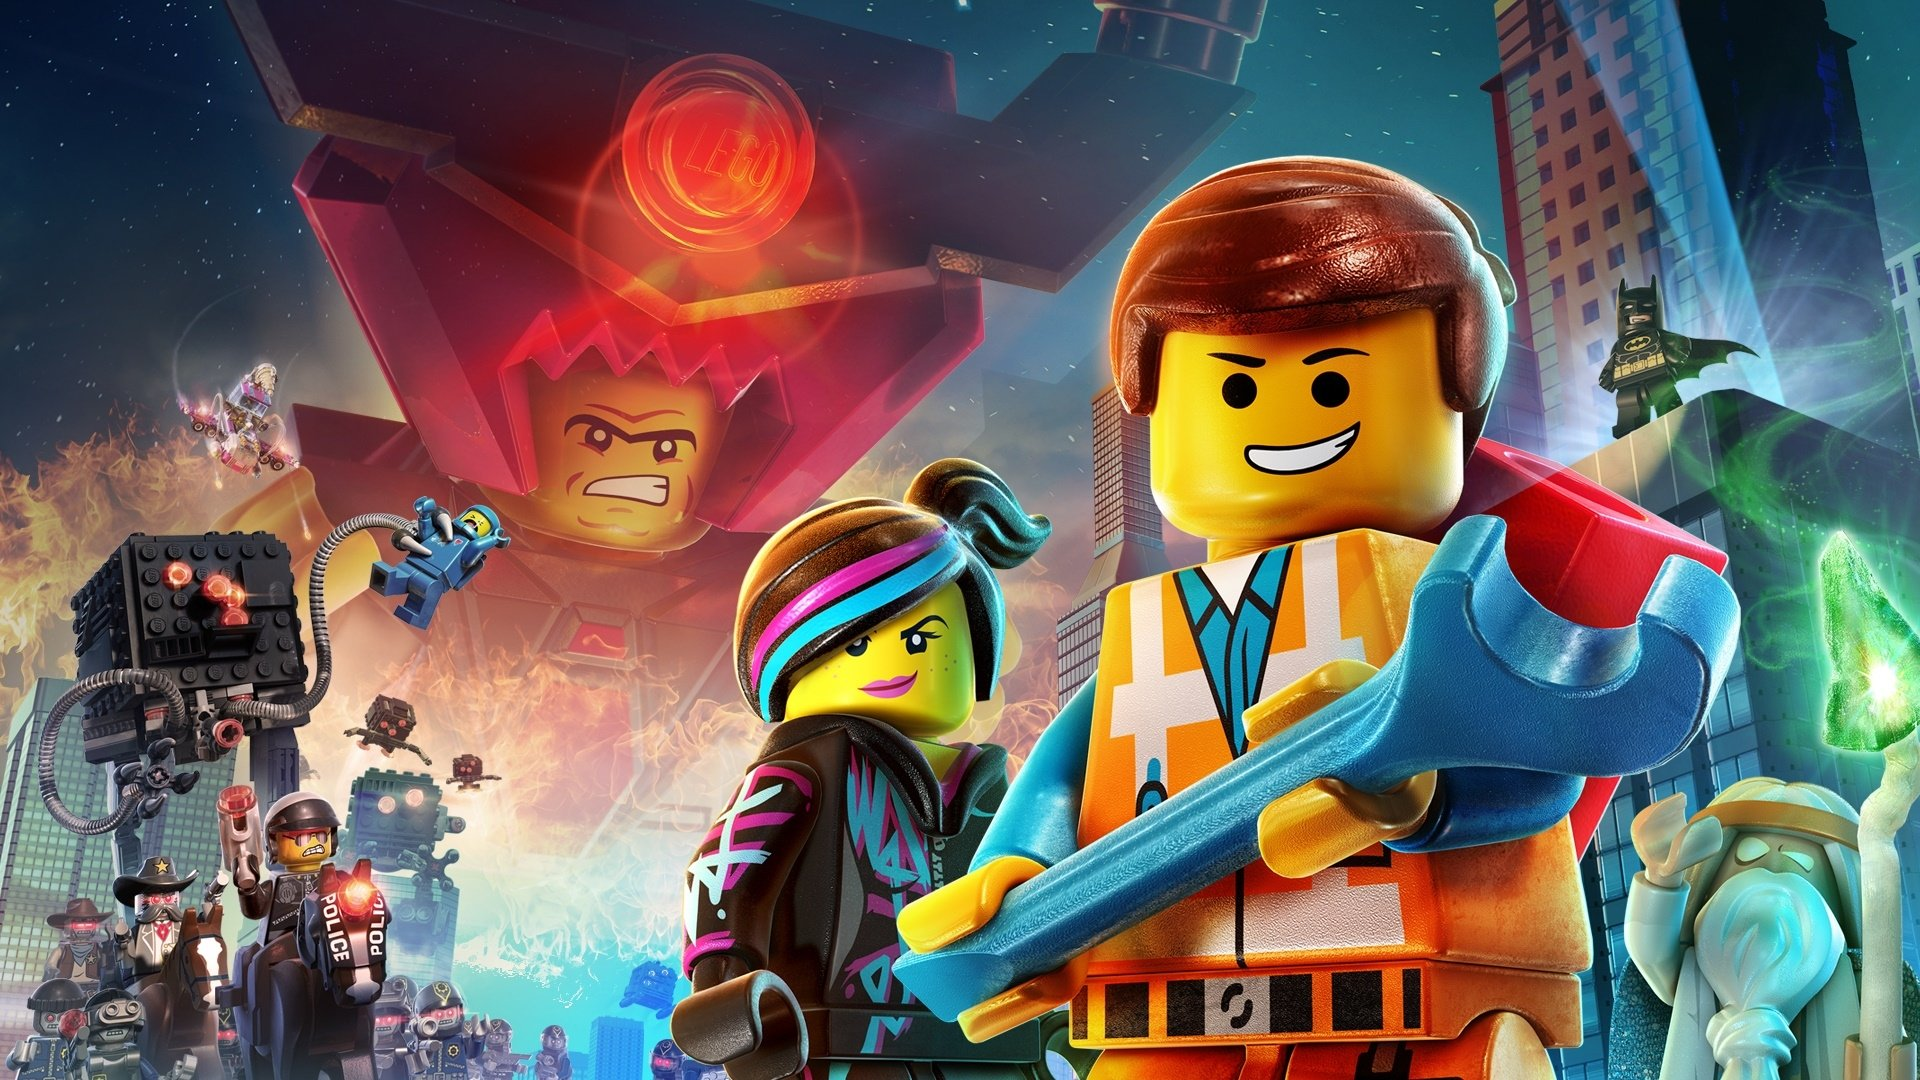 The Lego Movie Videogame Hd Wallpaper Background Image 1920x1080